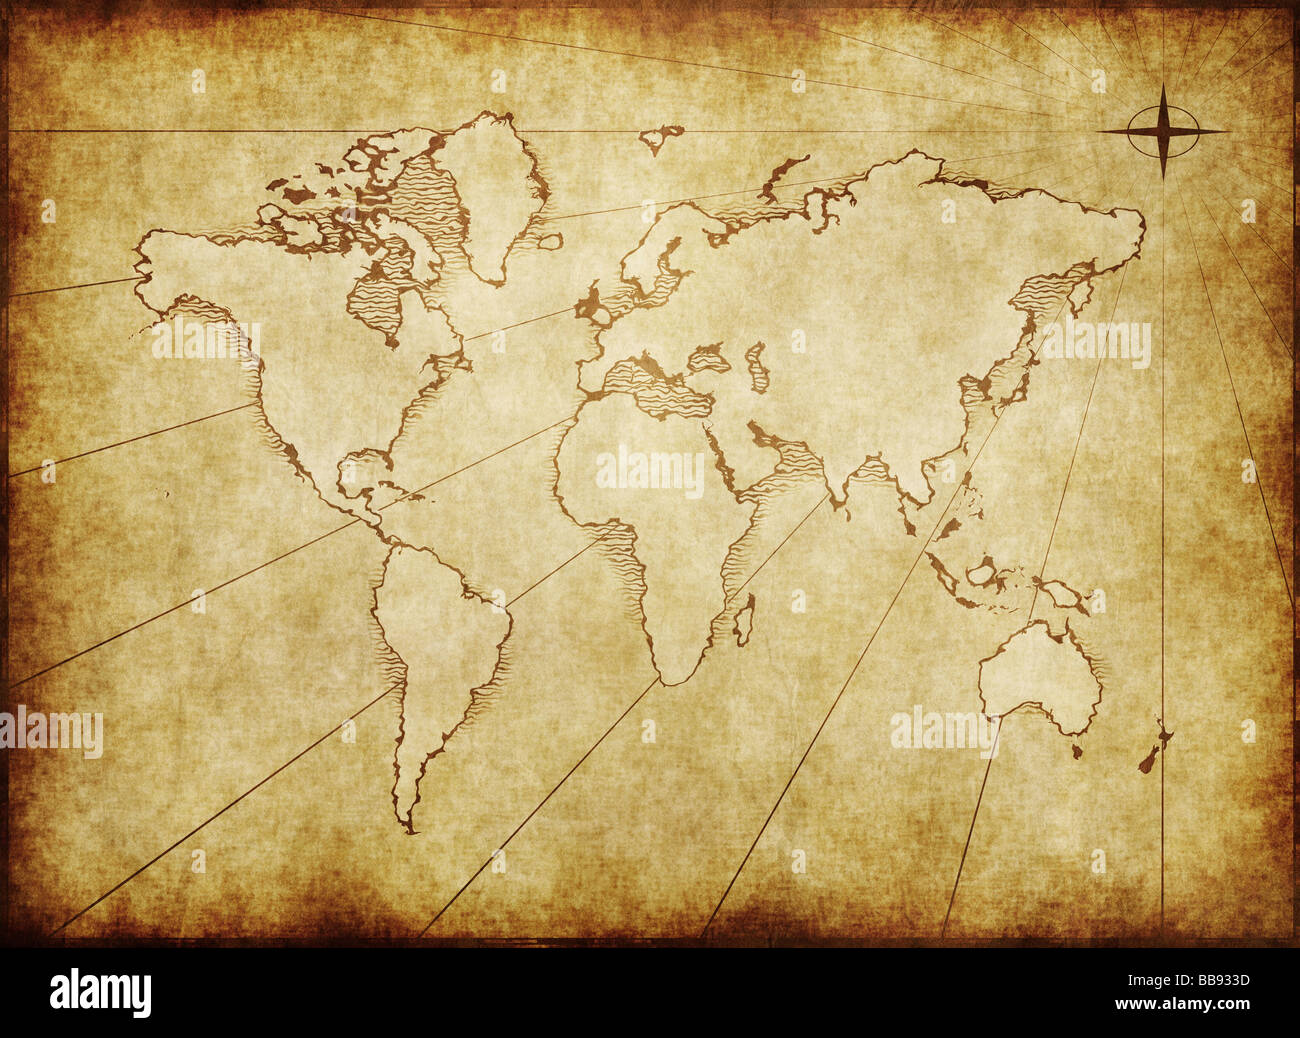 an old world map drawn onto parchment paper Stock Photo